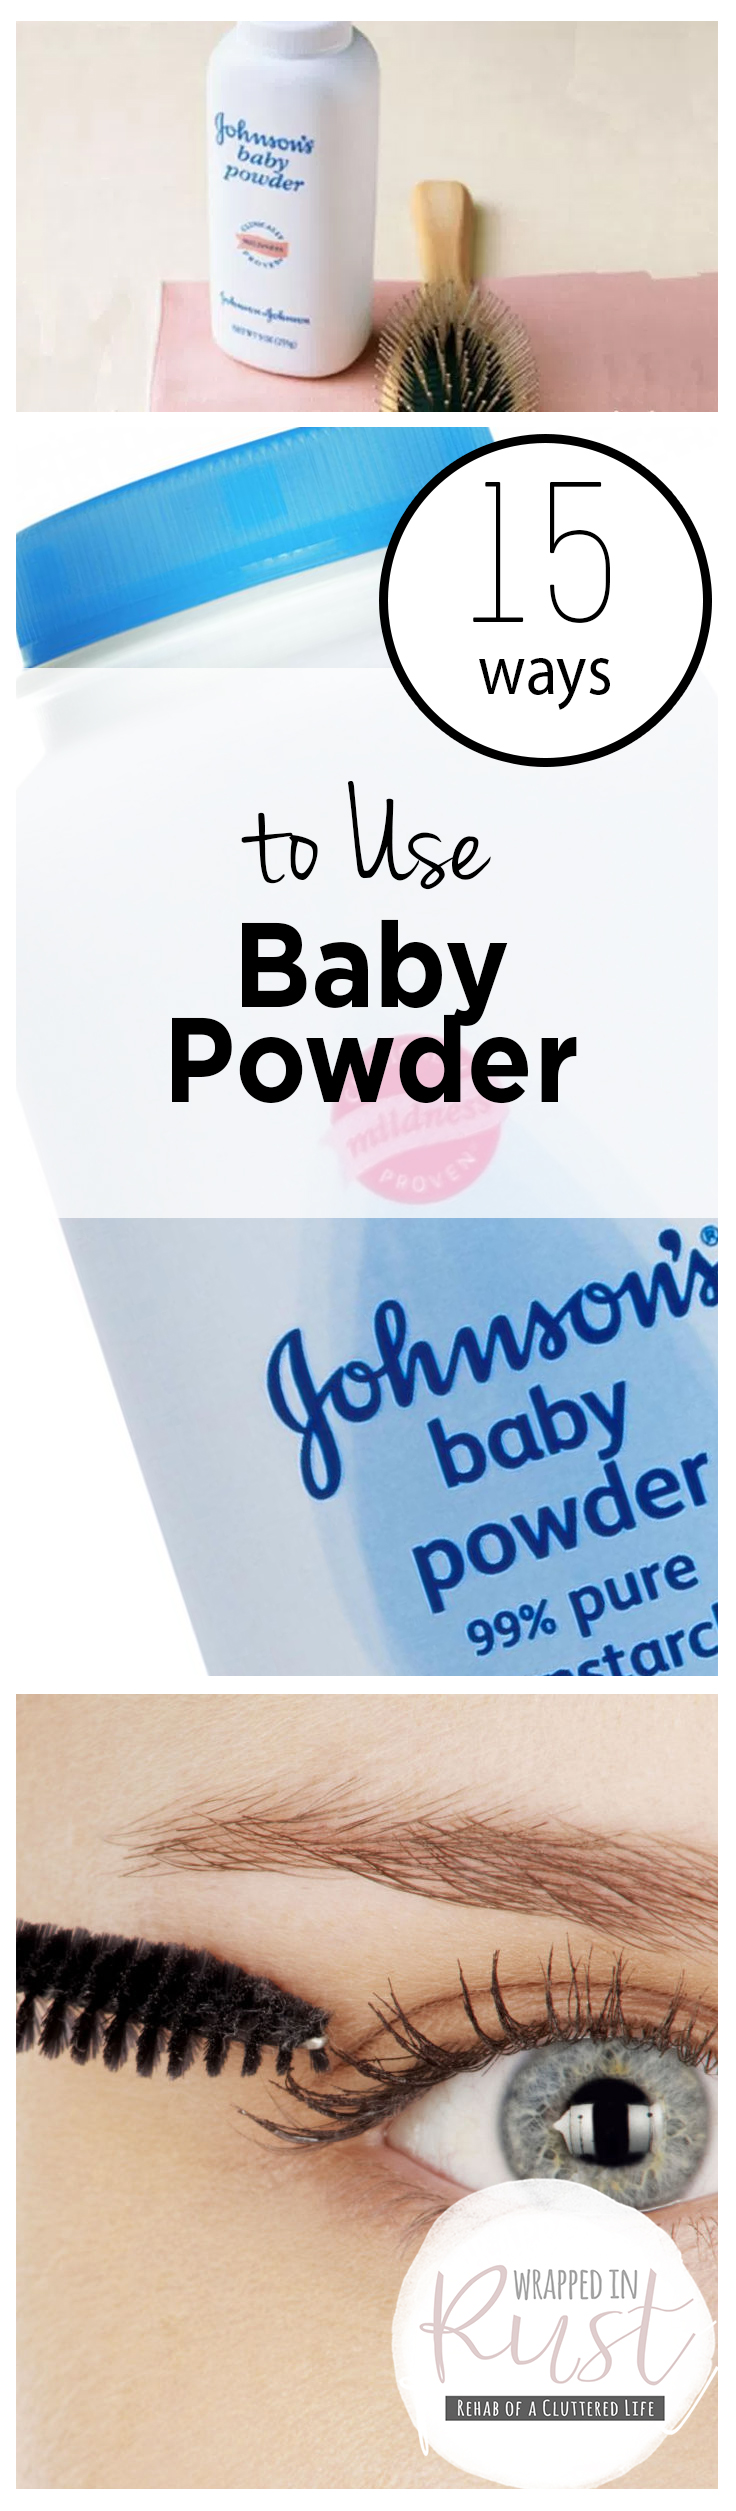 15 Ways to Use Baby Powder| How to Use Baby Powder, Baby Powder, Things to do With Baby Powder, Natural Living, Home, Home Hacks, Home Tips and Tricks